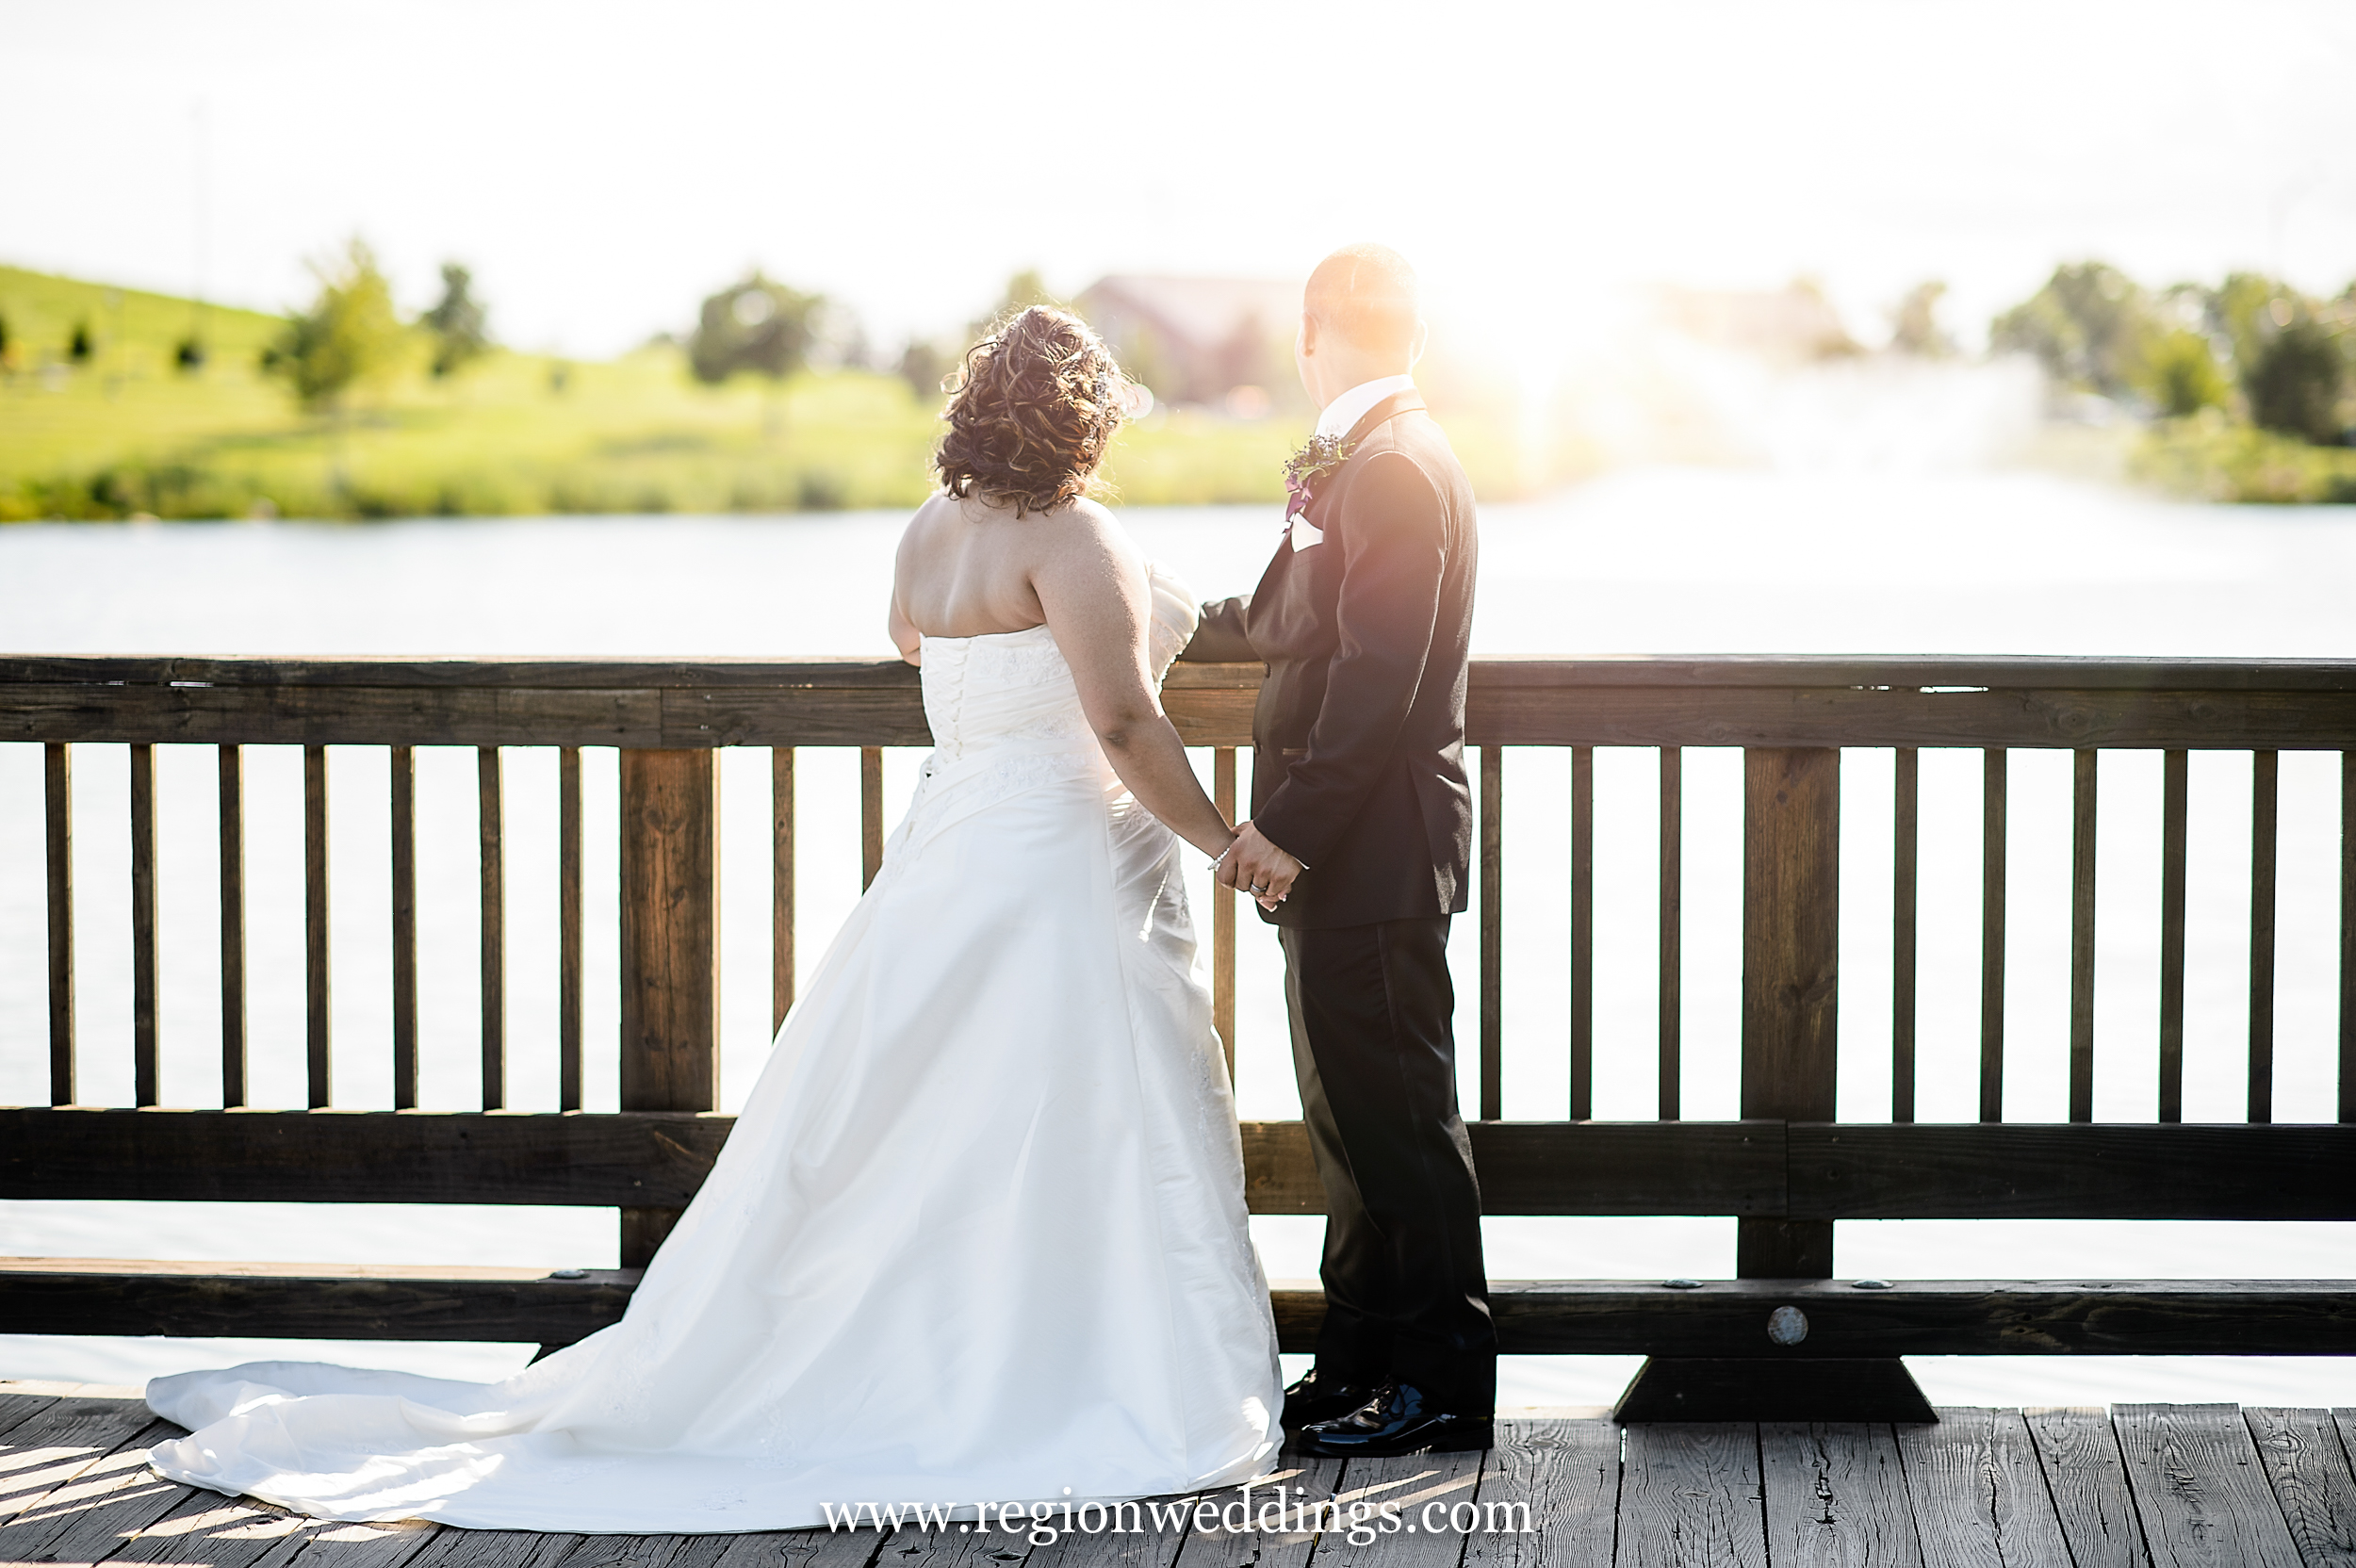 The bride and groom are illuminated by sun on the bridge at Centennial Park in Munster, Indiana.